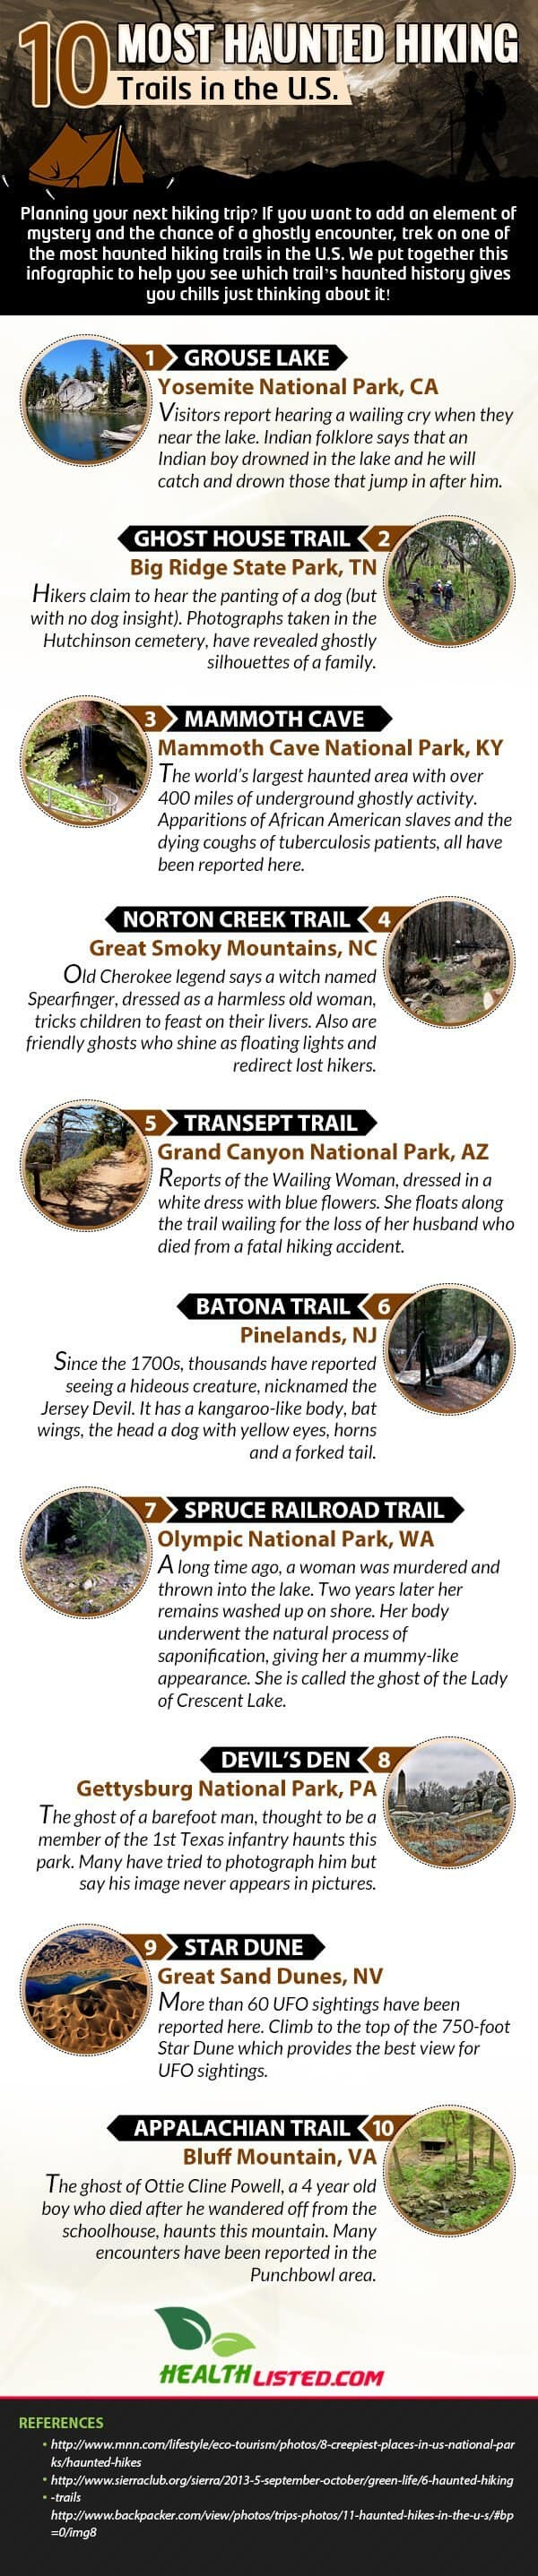 10 Most Haunted Hiking Trails in the US